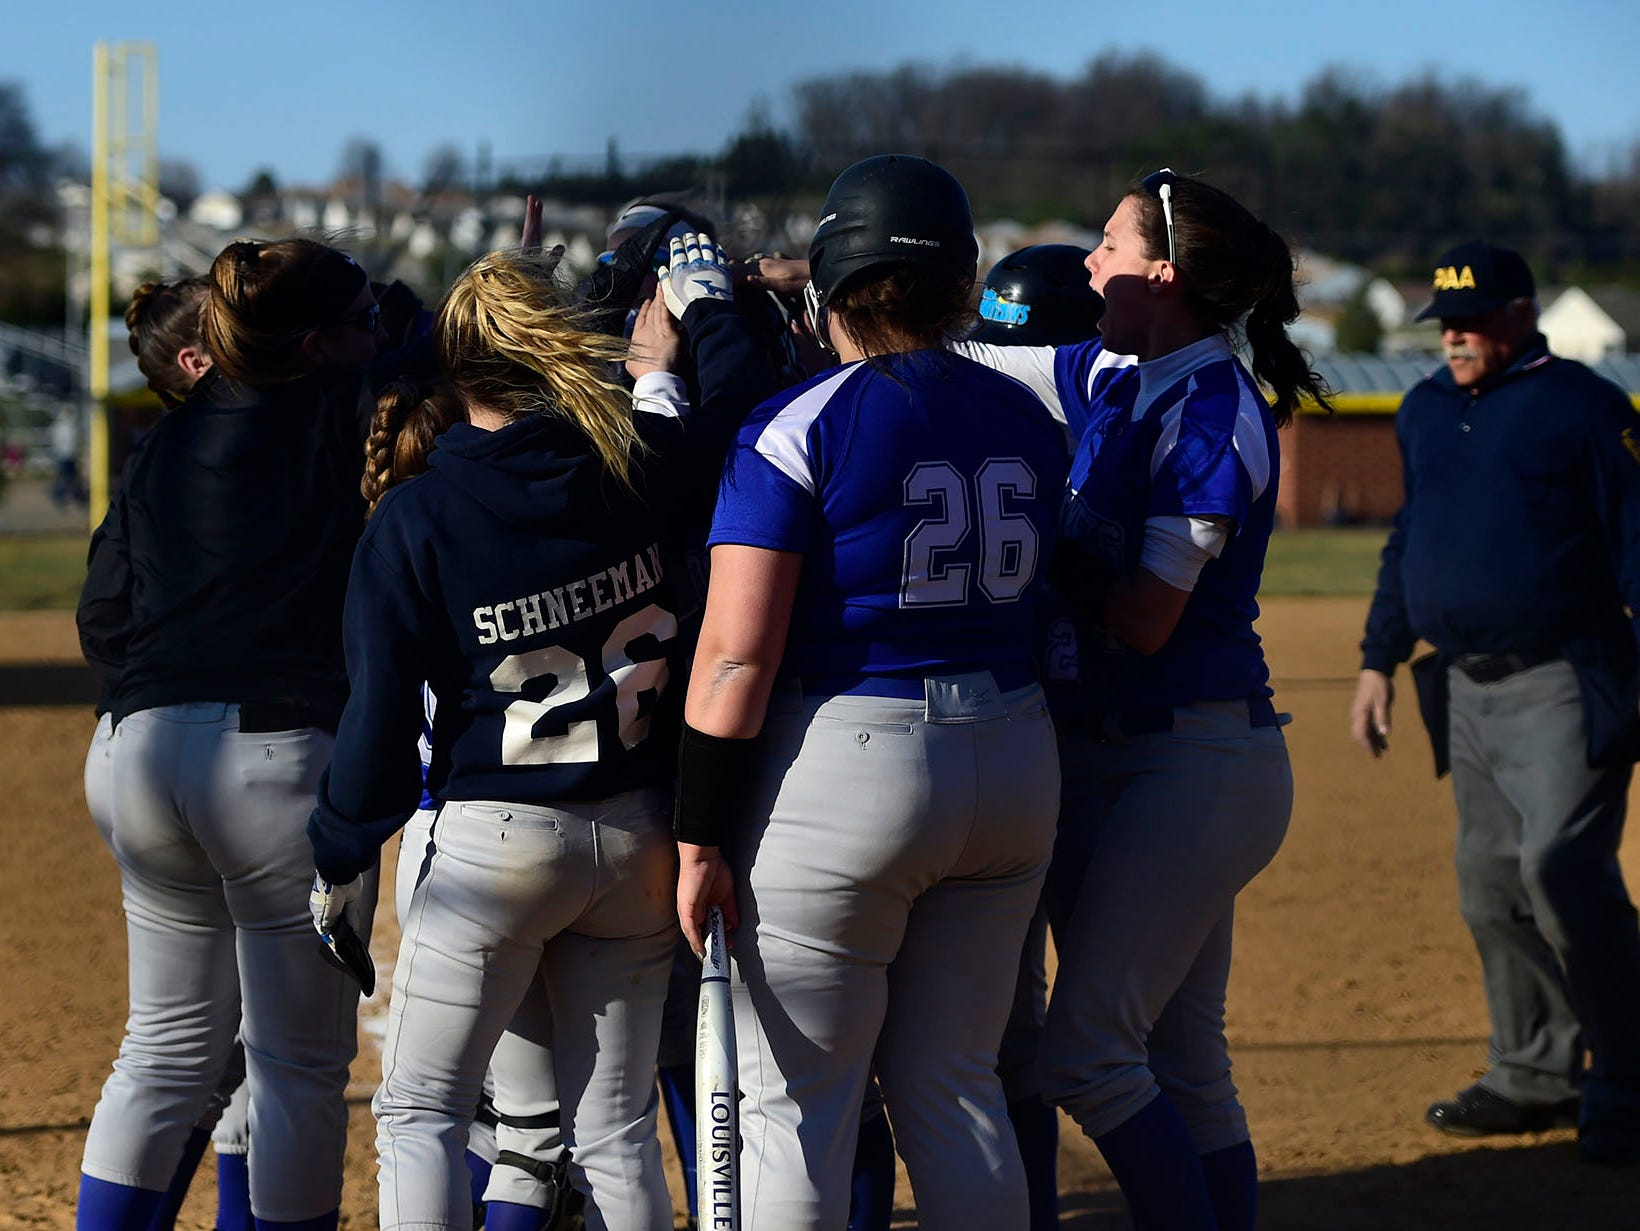 Spring Grove celebrate a home run hit by Hannah Gartrell. It was one of three homers hit by the Rockets Wednesday, April 3, 2019.